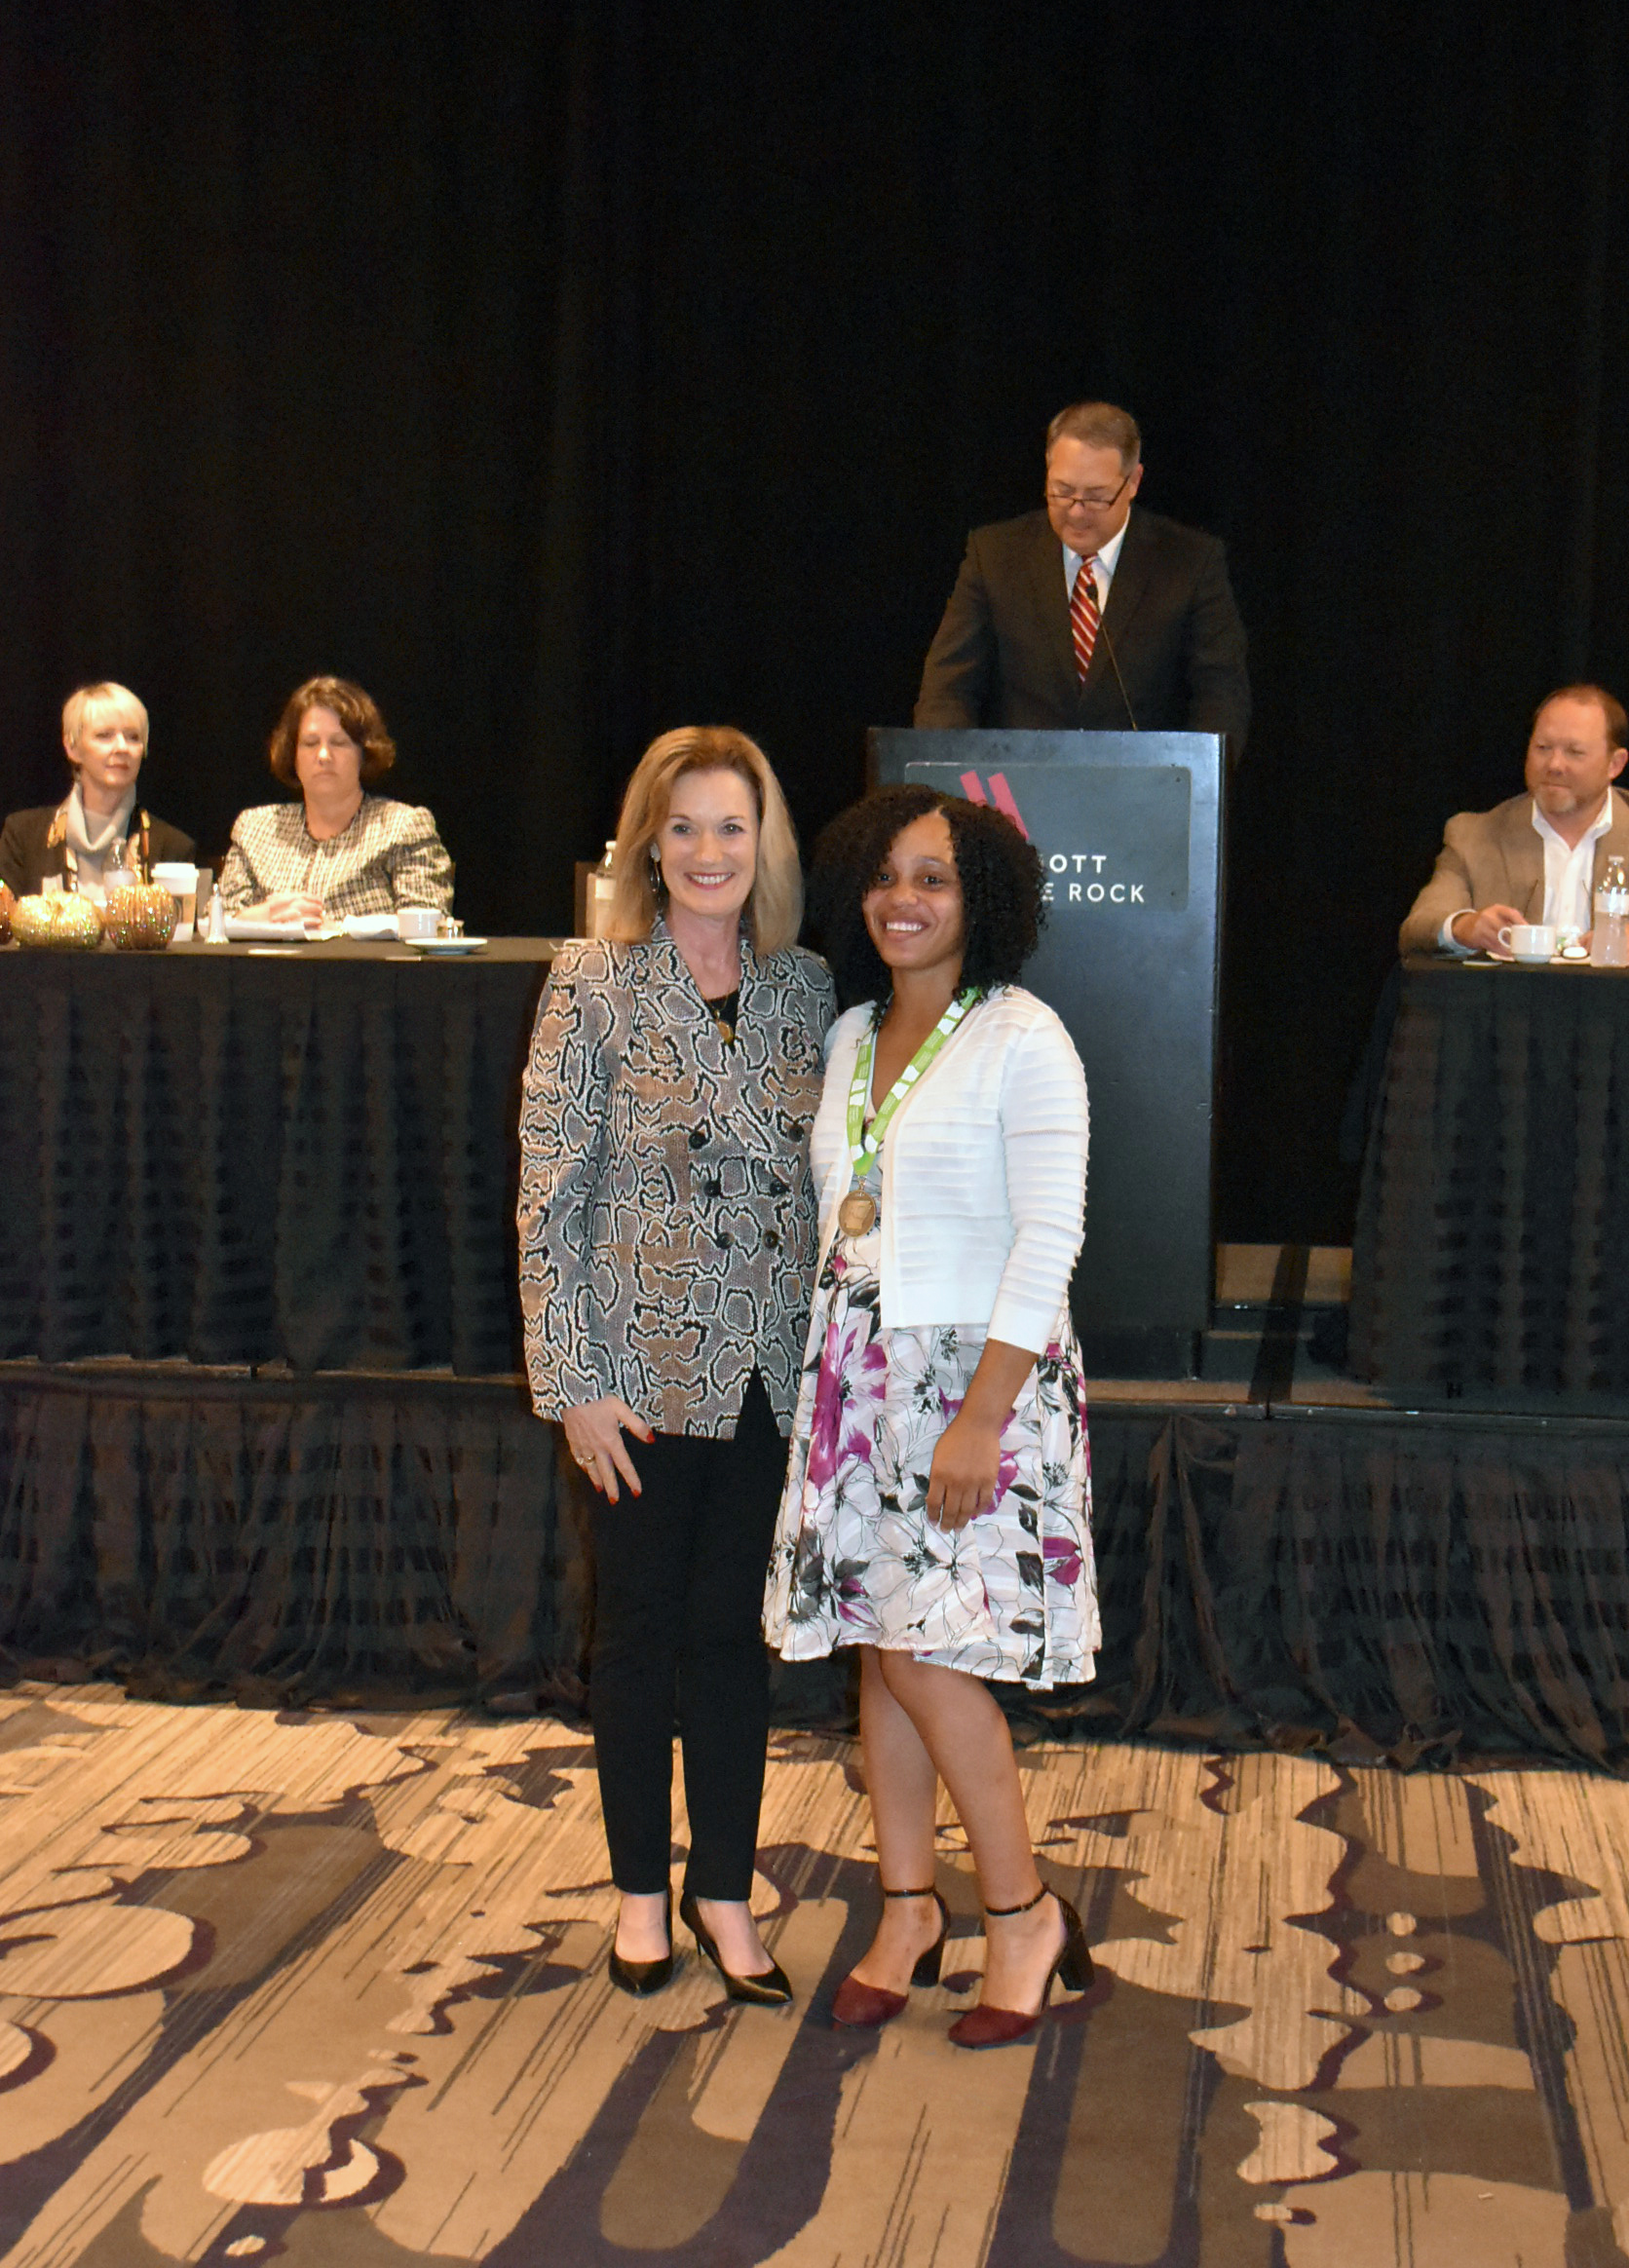 Pictured left to right: Dr. Sandra Massey, Chair of Arkansas Community Colleges President's and Chancellor's Committee, presents Kalesha Parrish with the UAHT Academic All-Star Award.